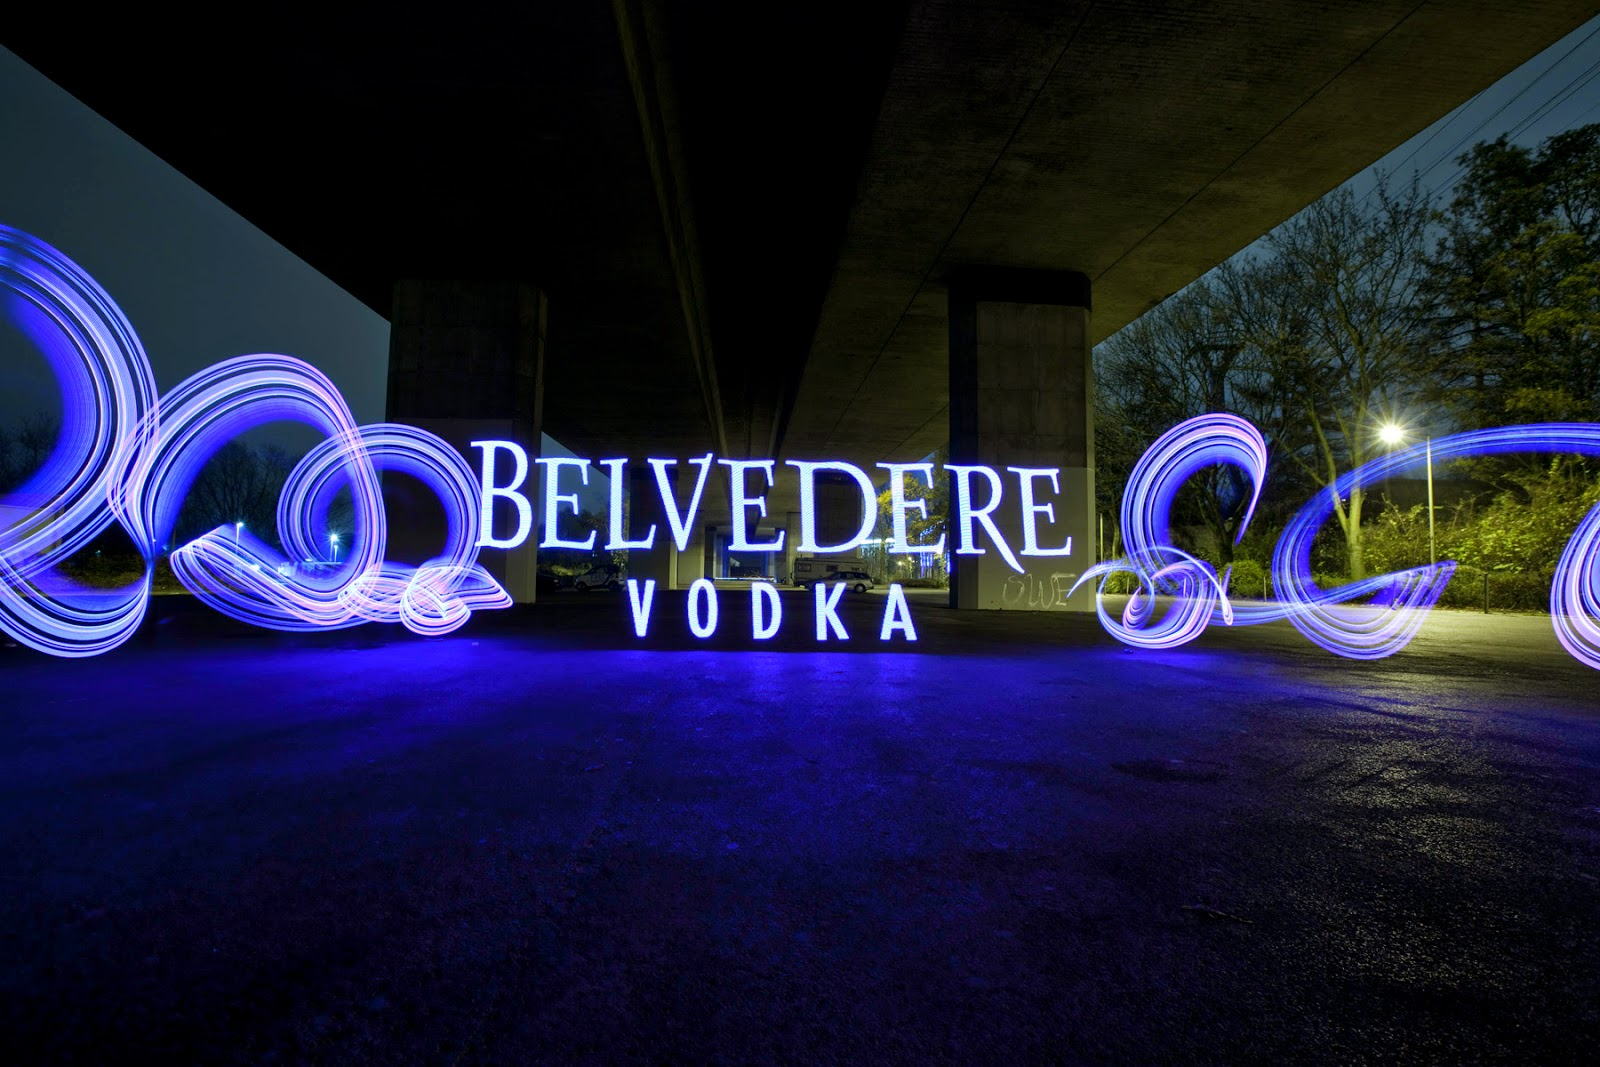 Lichtfaktor, light painting, Belvedere Vodka, Shine